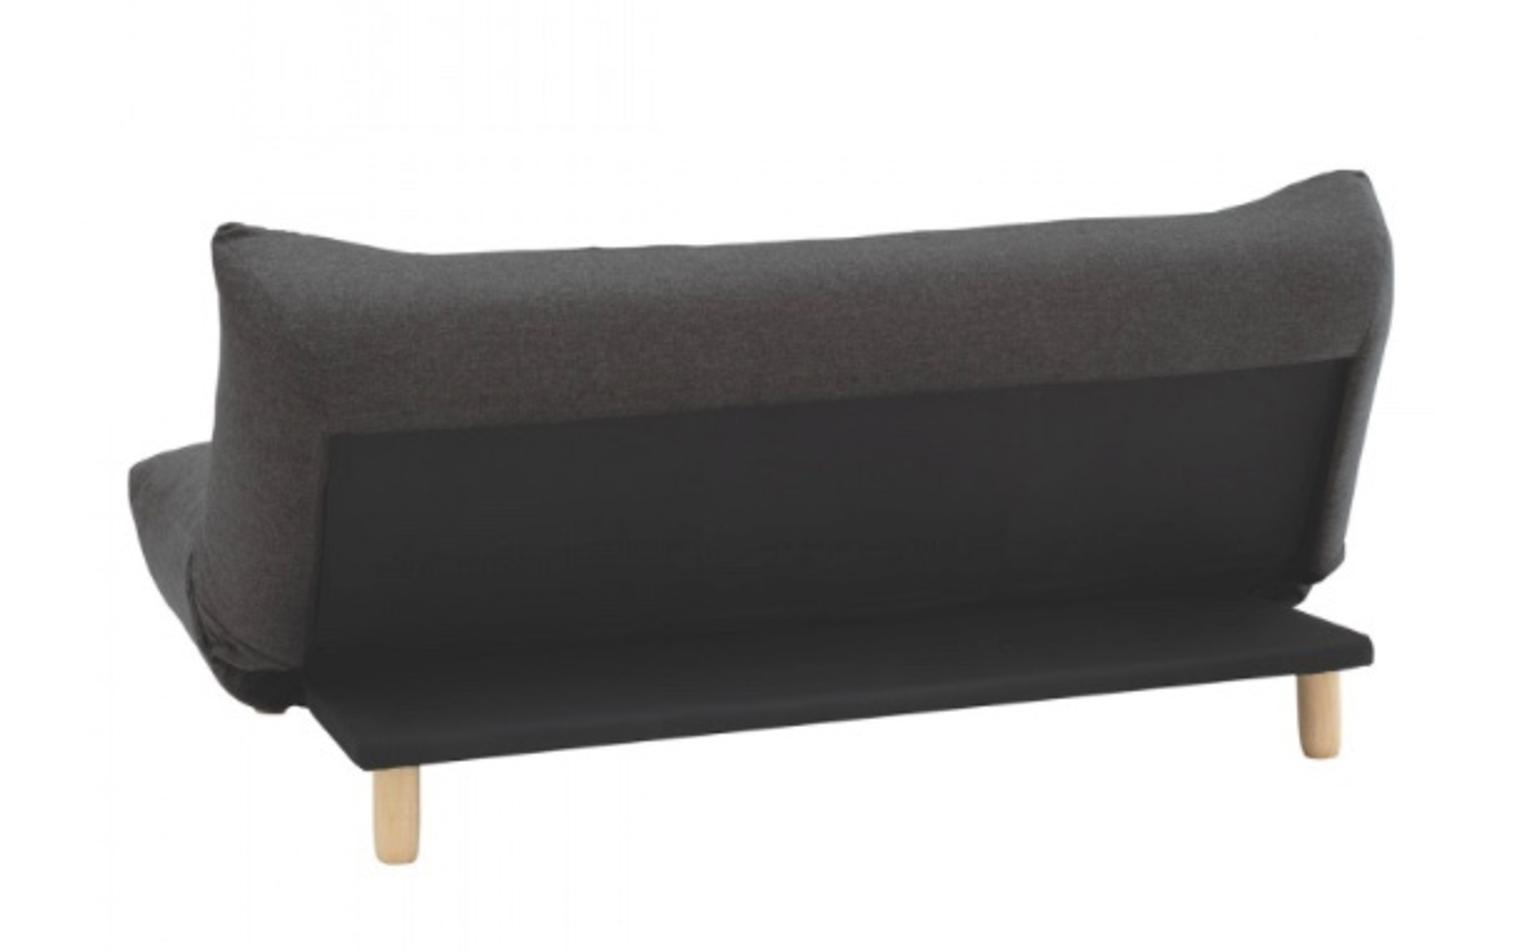 4e007bc13c4 Habitat Kota 3 seater sofa bed - 1 yr old in TN9 Malling for £75.00 for sale  - Shpock